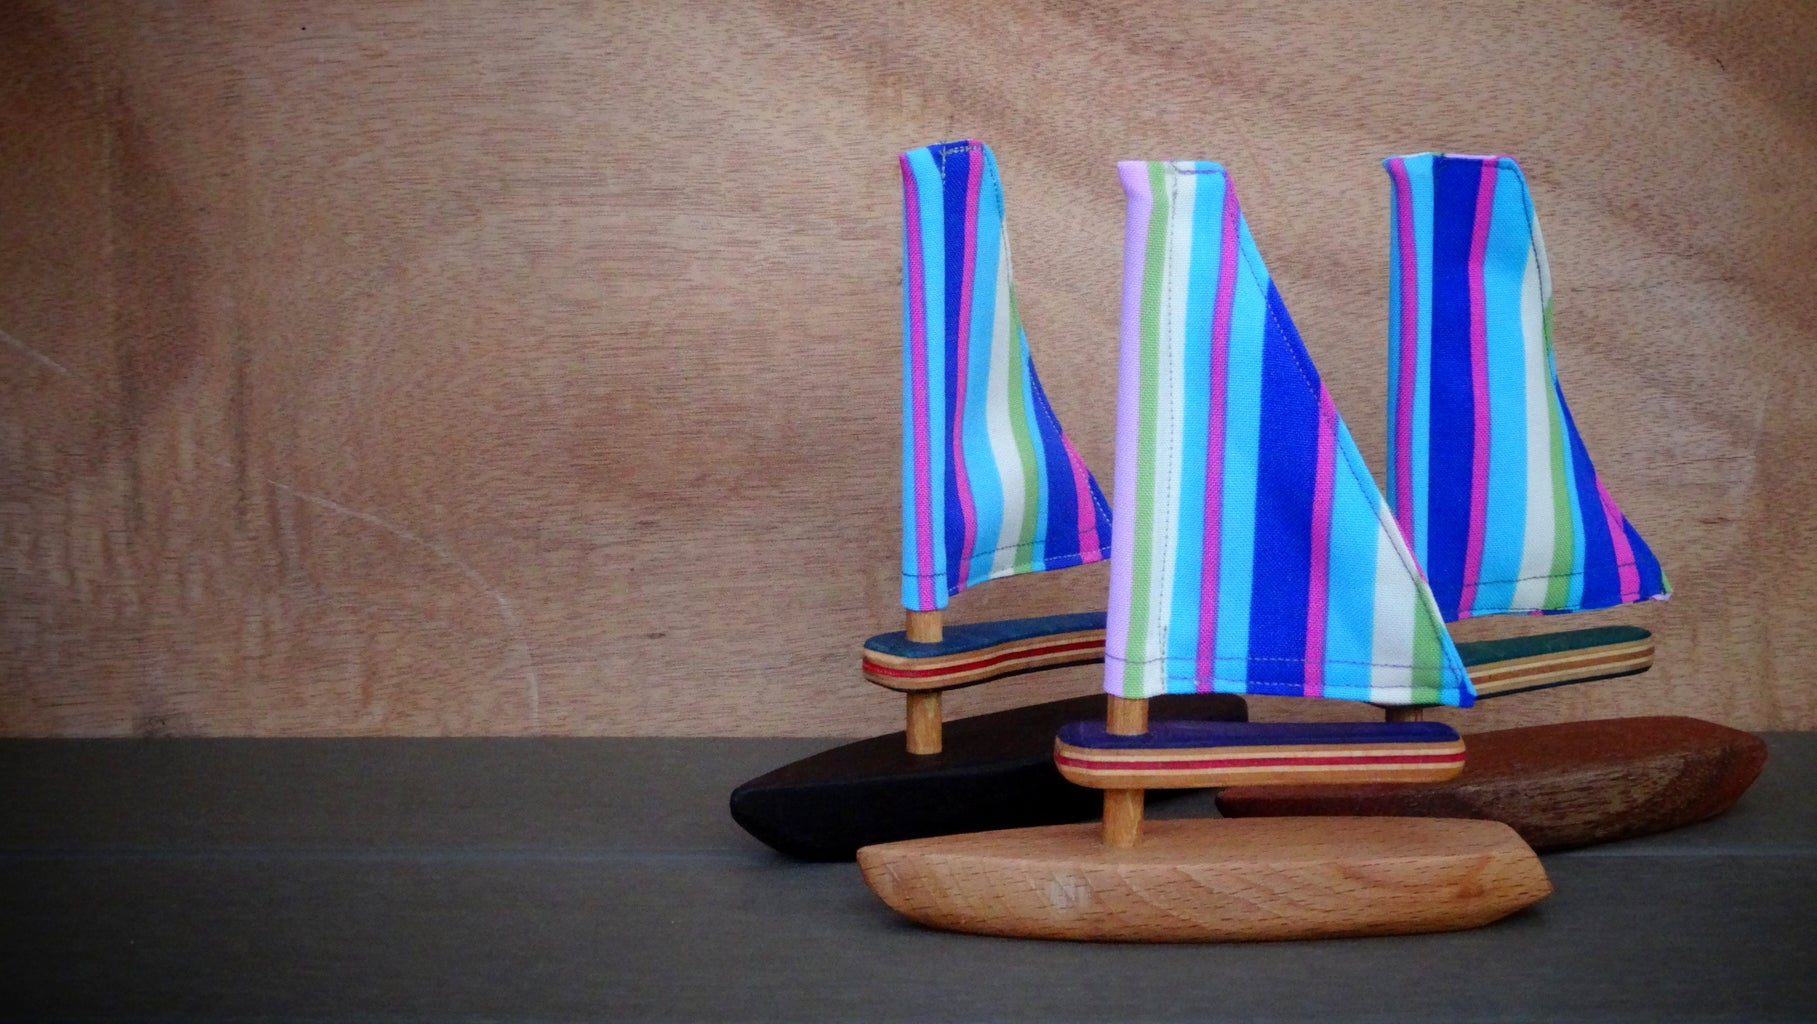 Wooden Toy Sailboats